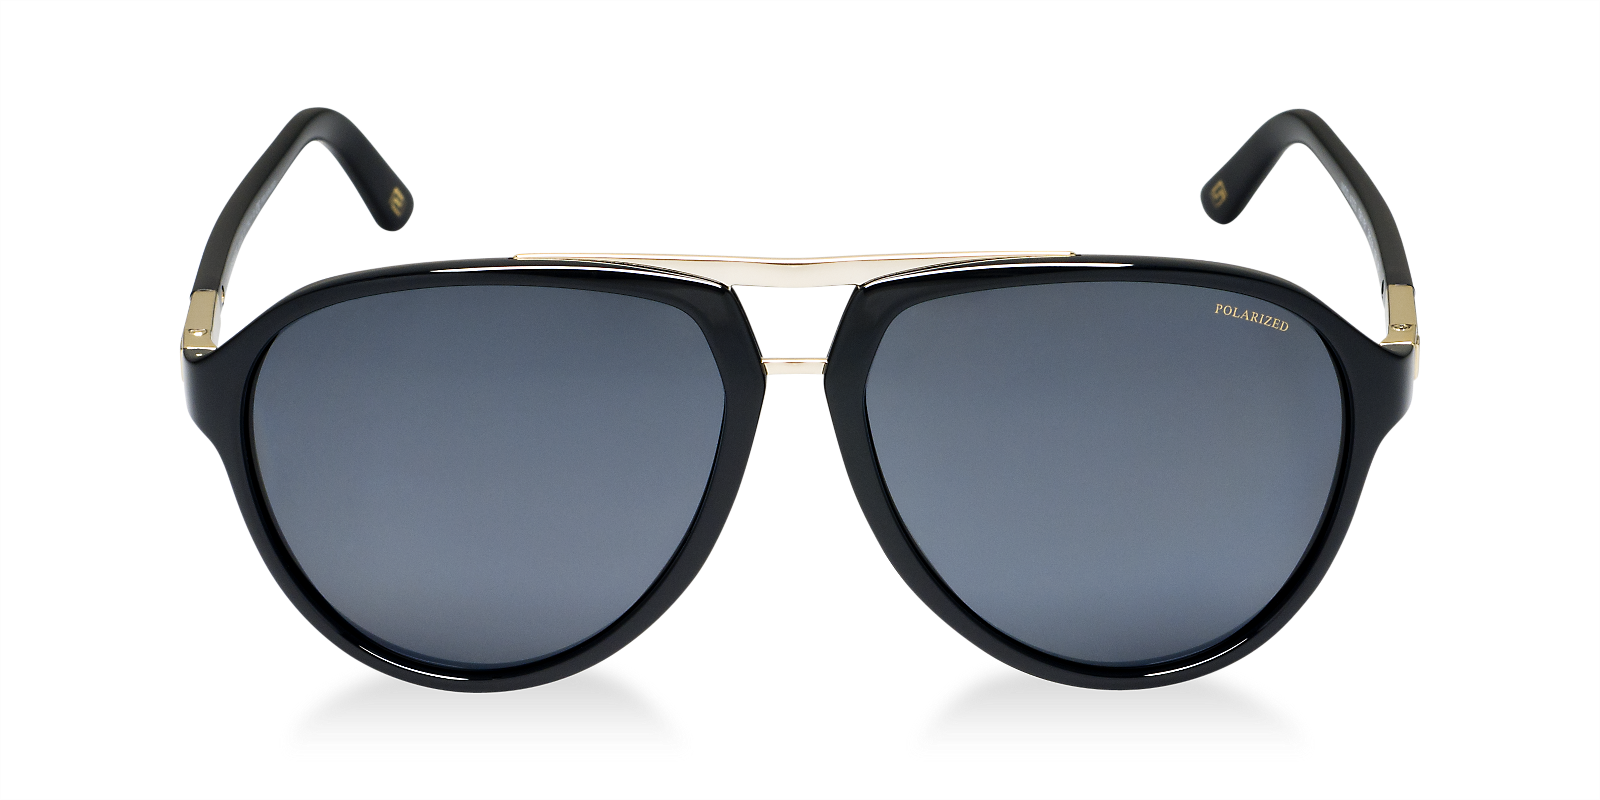 Cool Sunglass PNG Image - Sunglasses HD PNG